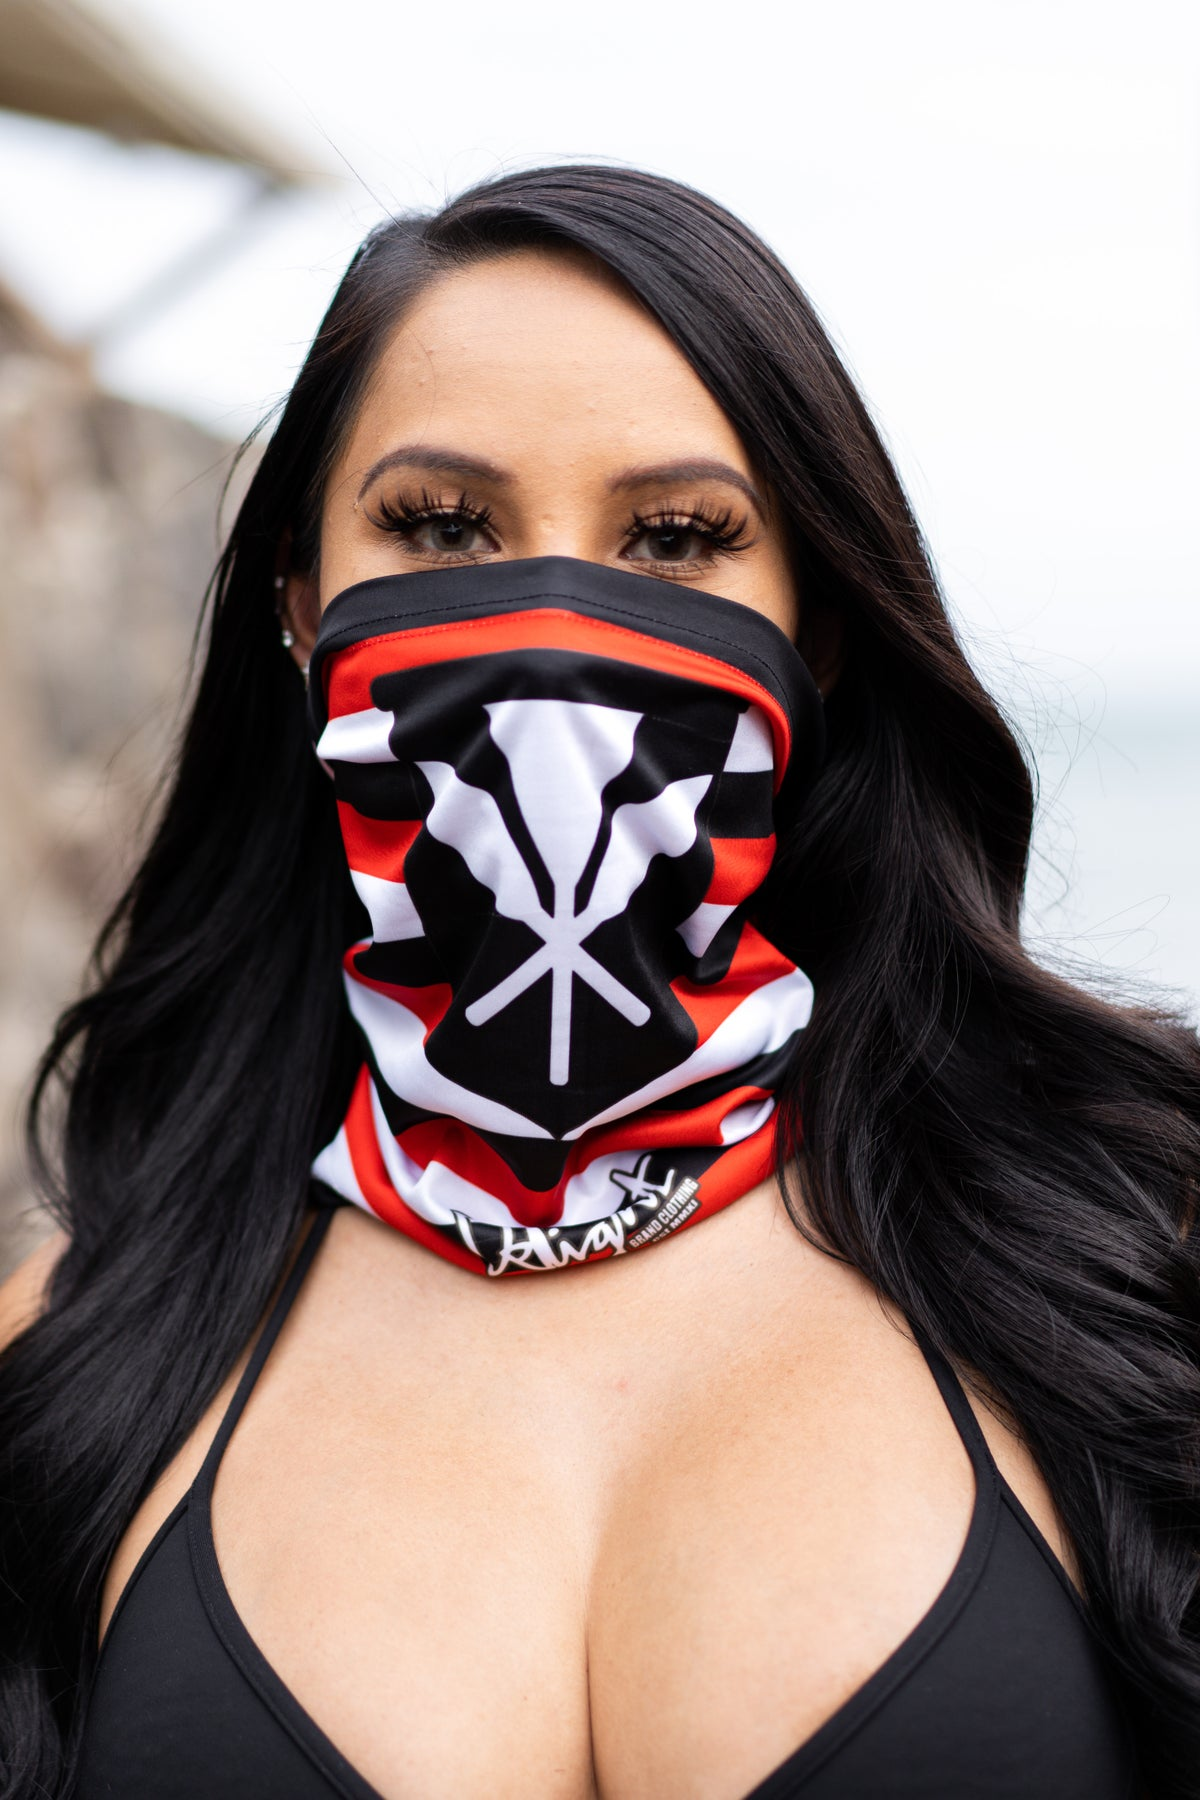 *RESTOCKED* Kanaka - Red. Black, White Face Shield